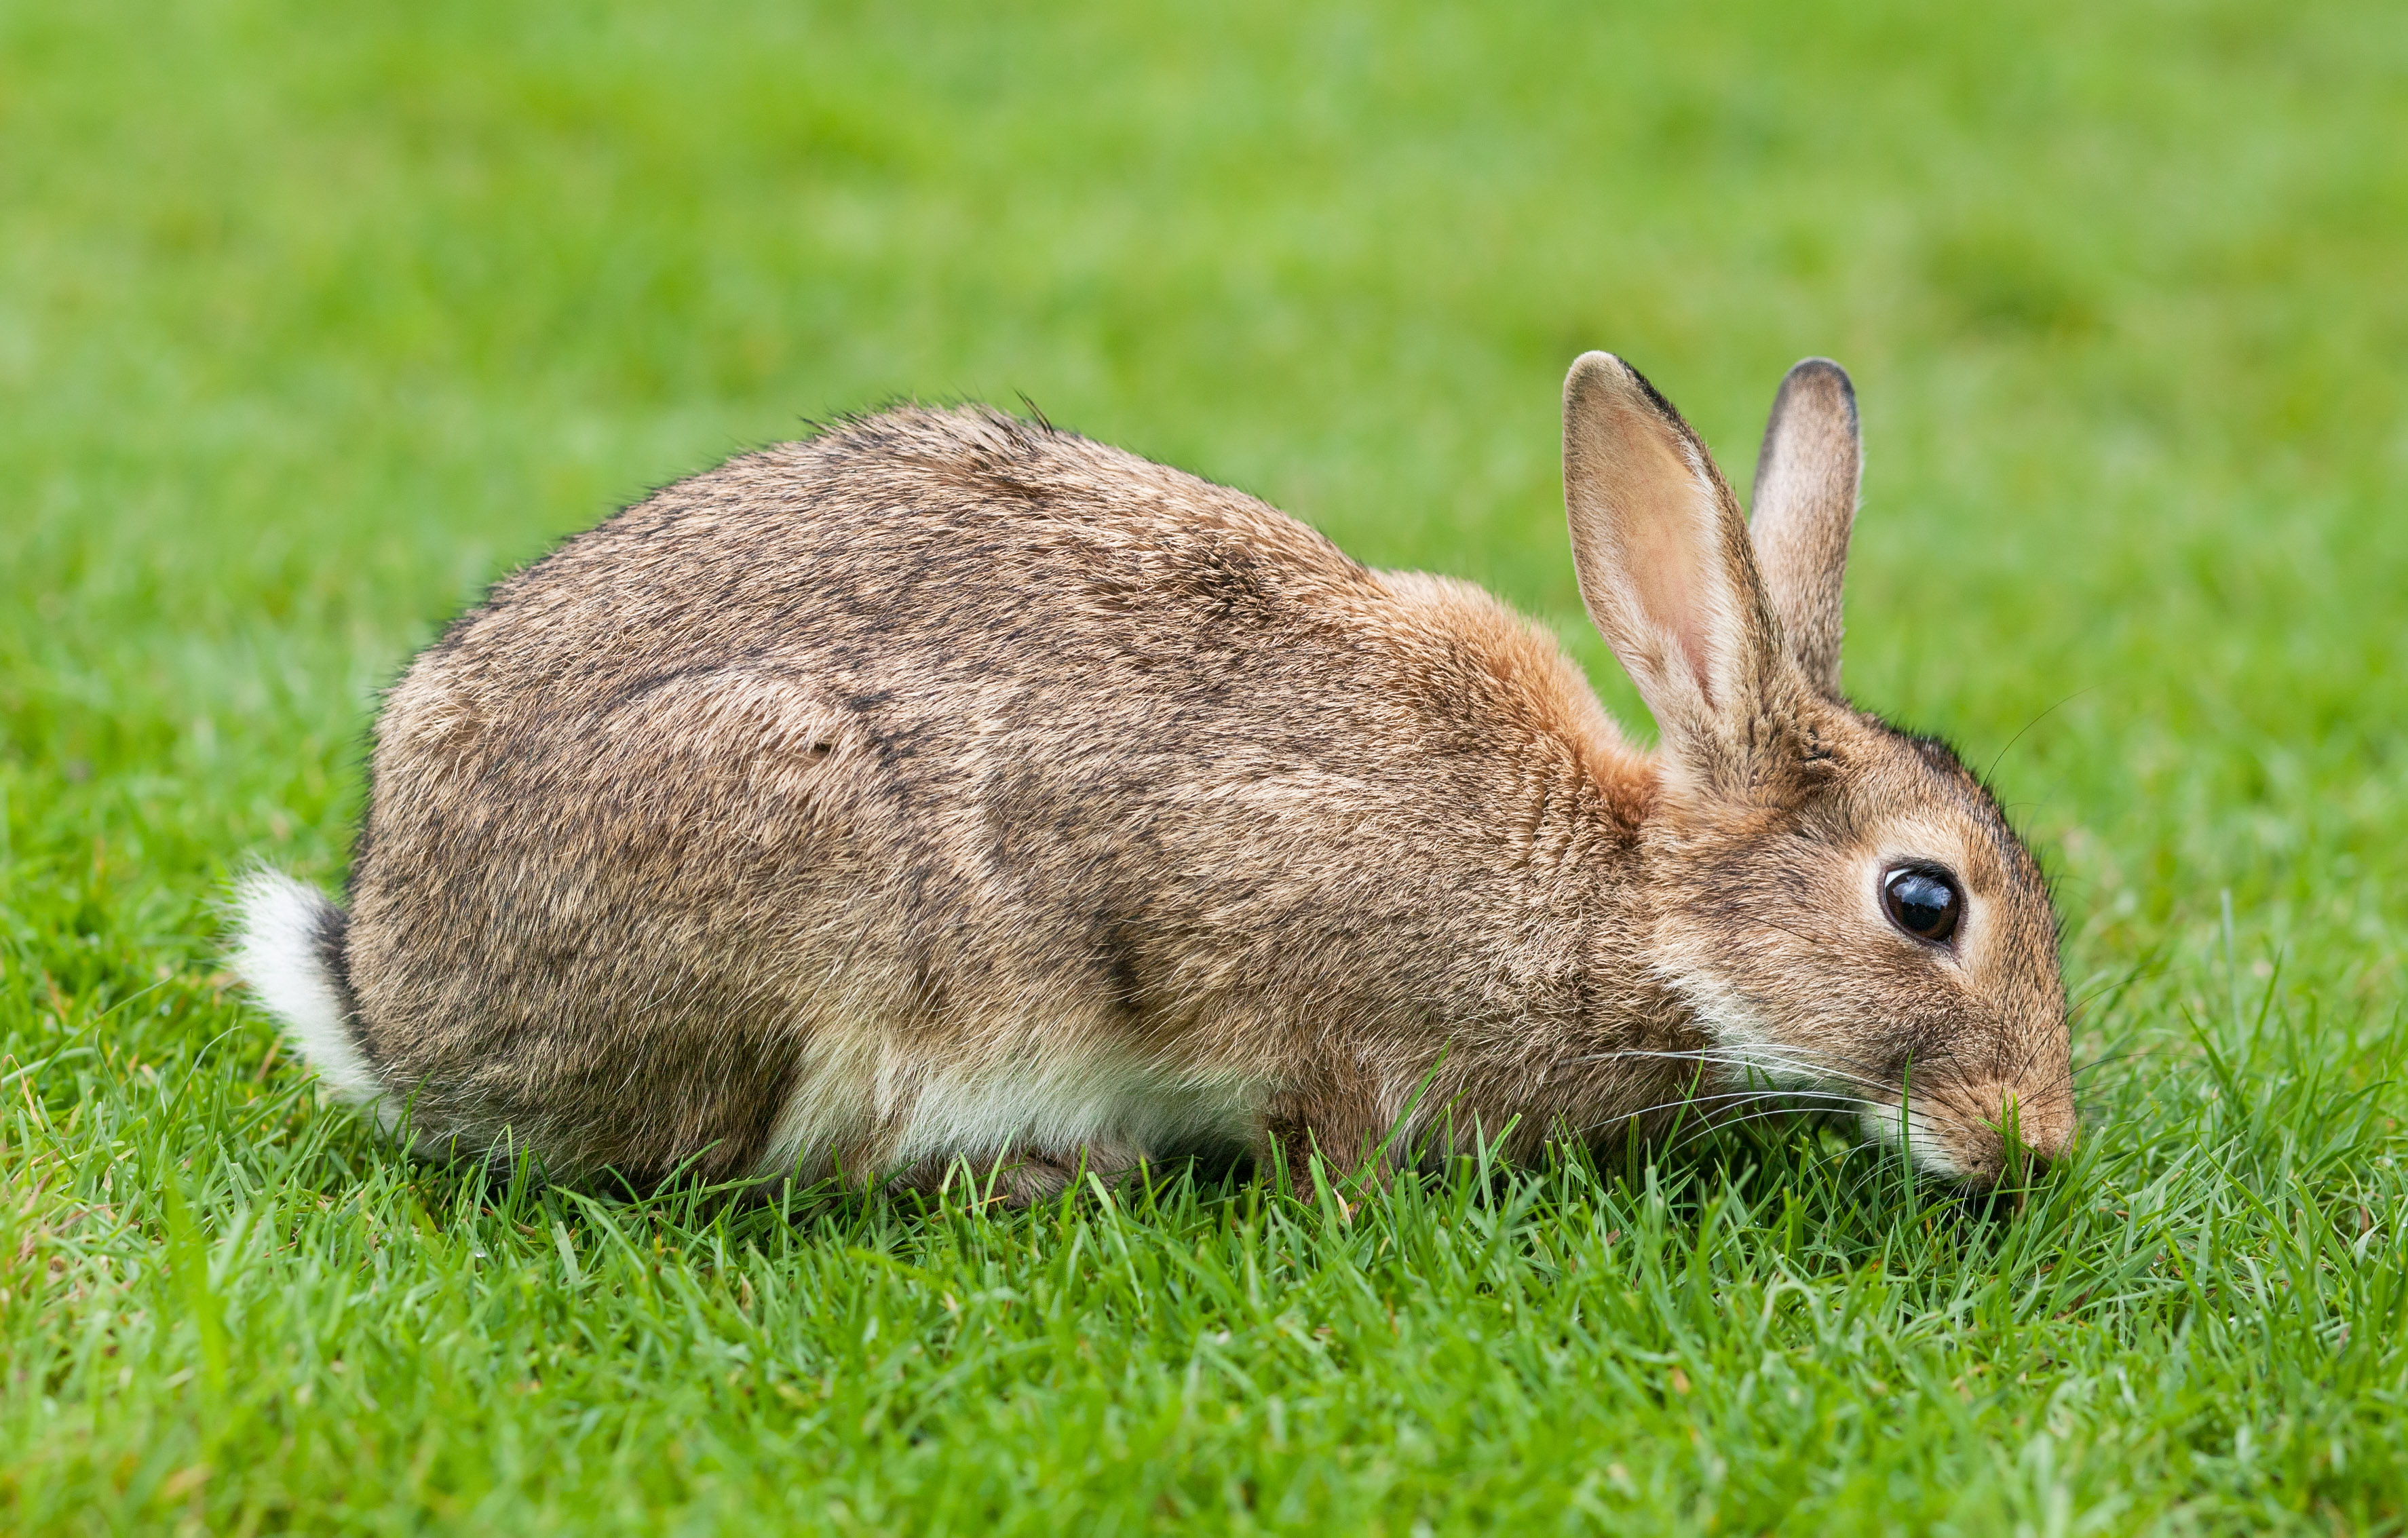 Utah Considers Passing Medical Marijuana, Is Warned Of Statewide Stoned Rabbits